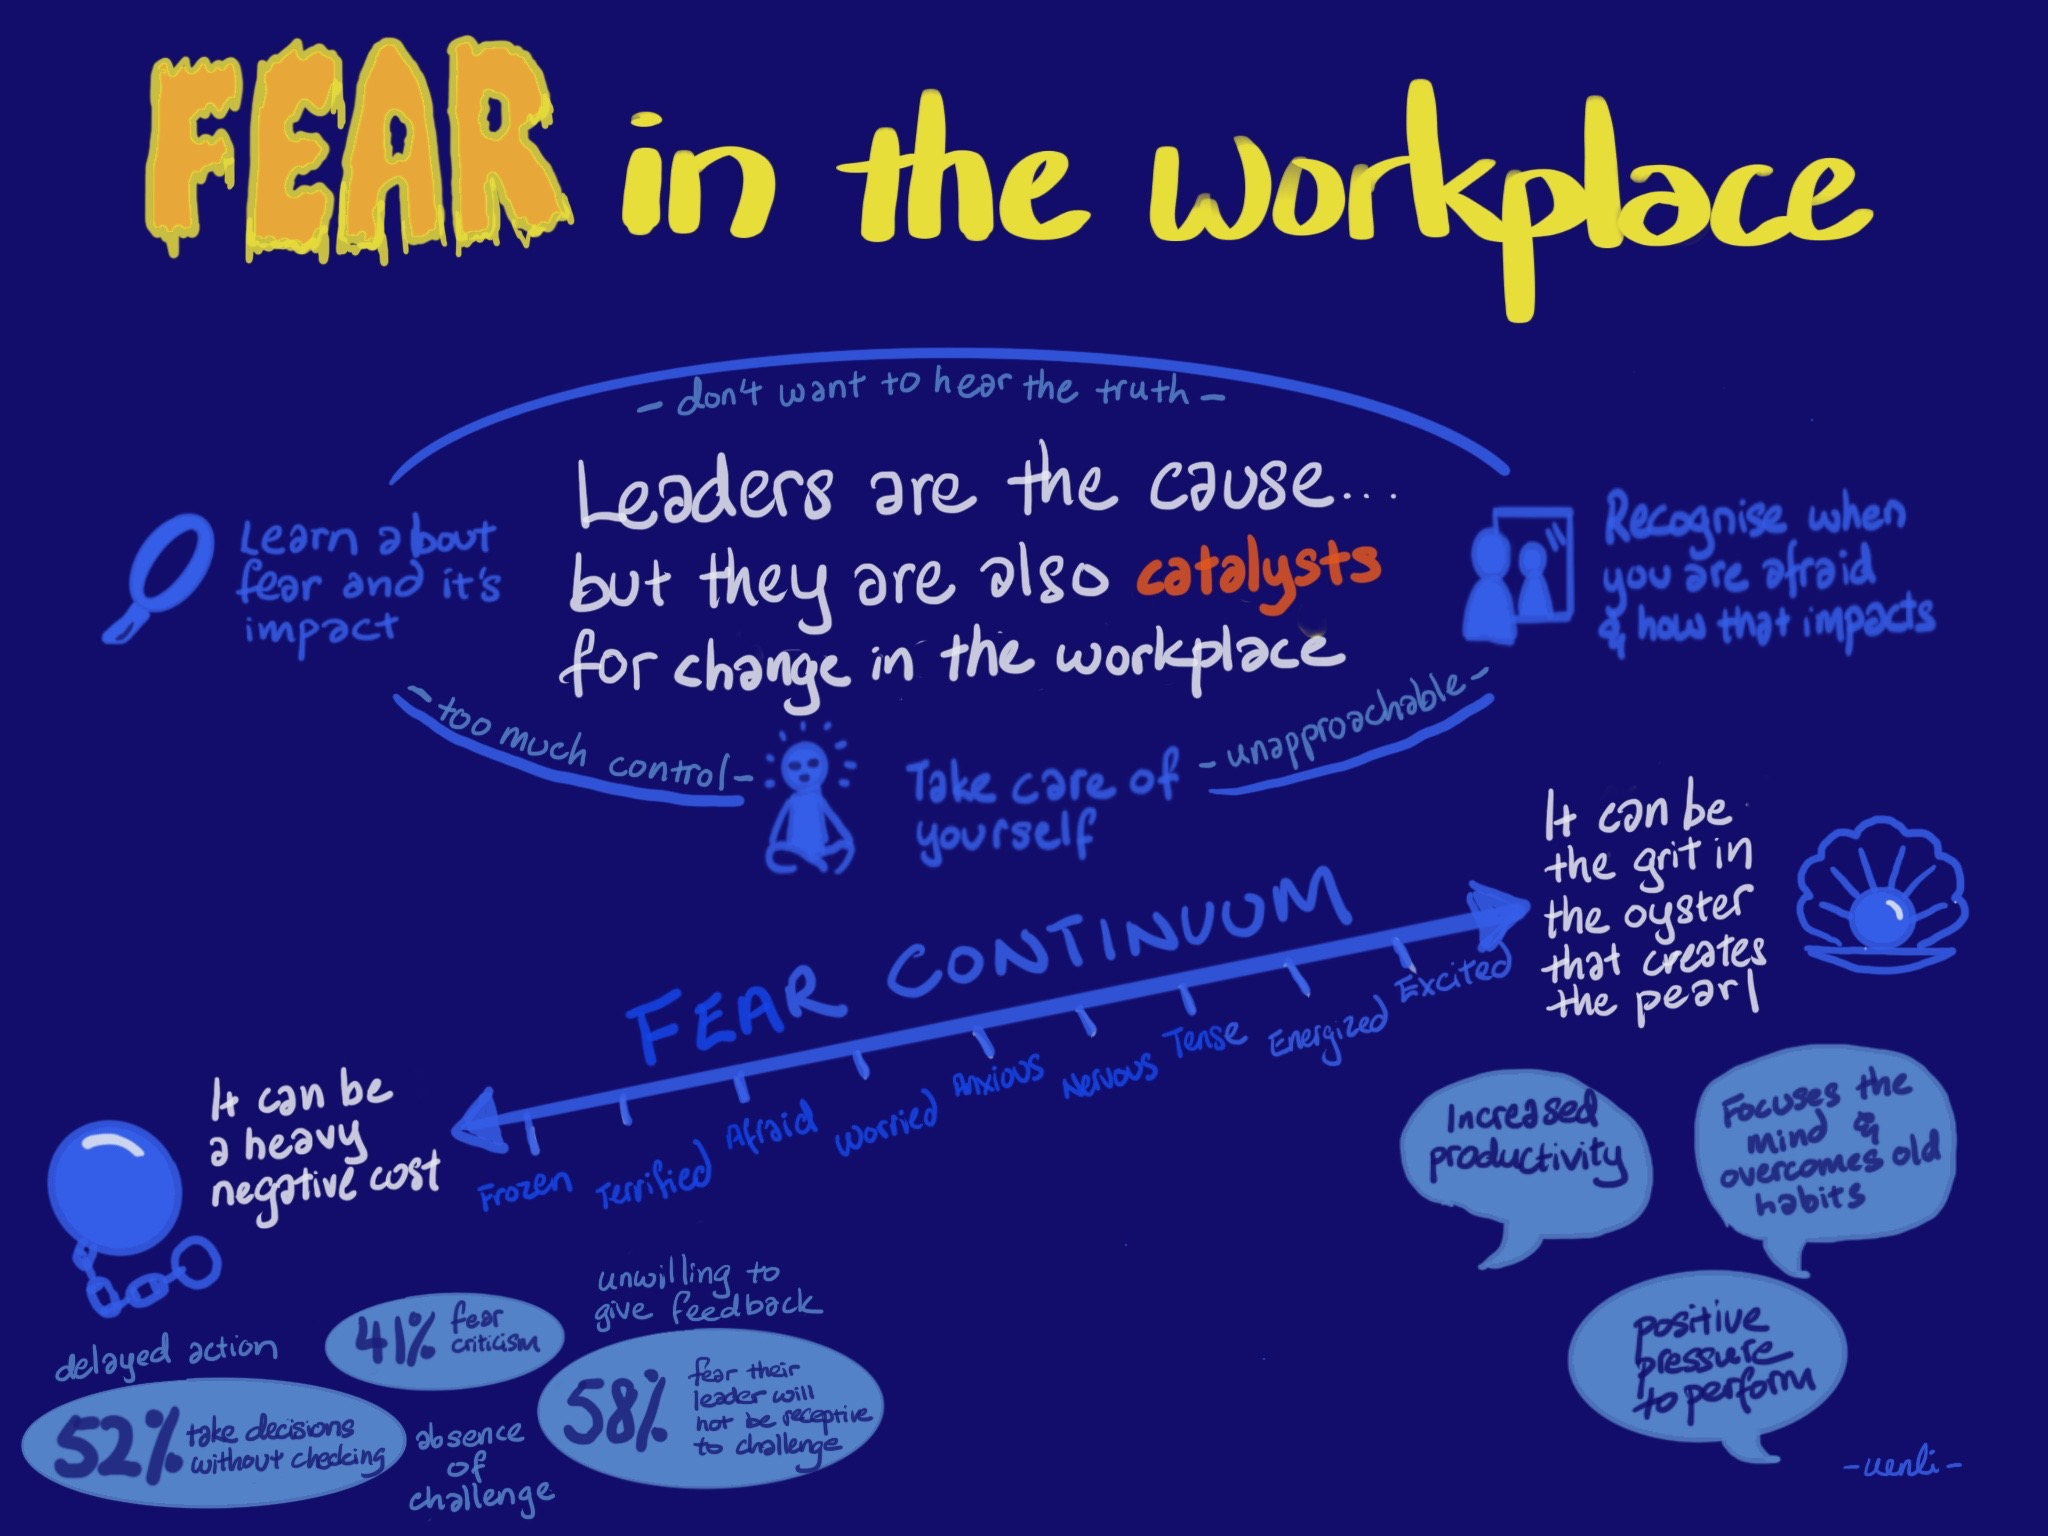 Fear in the Workplace Image